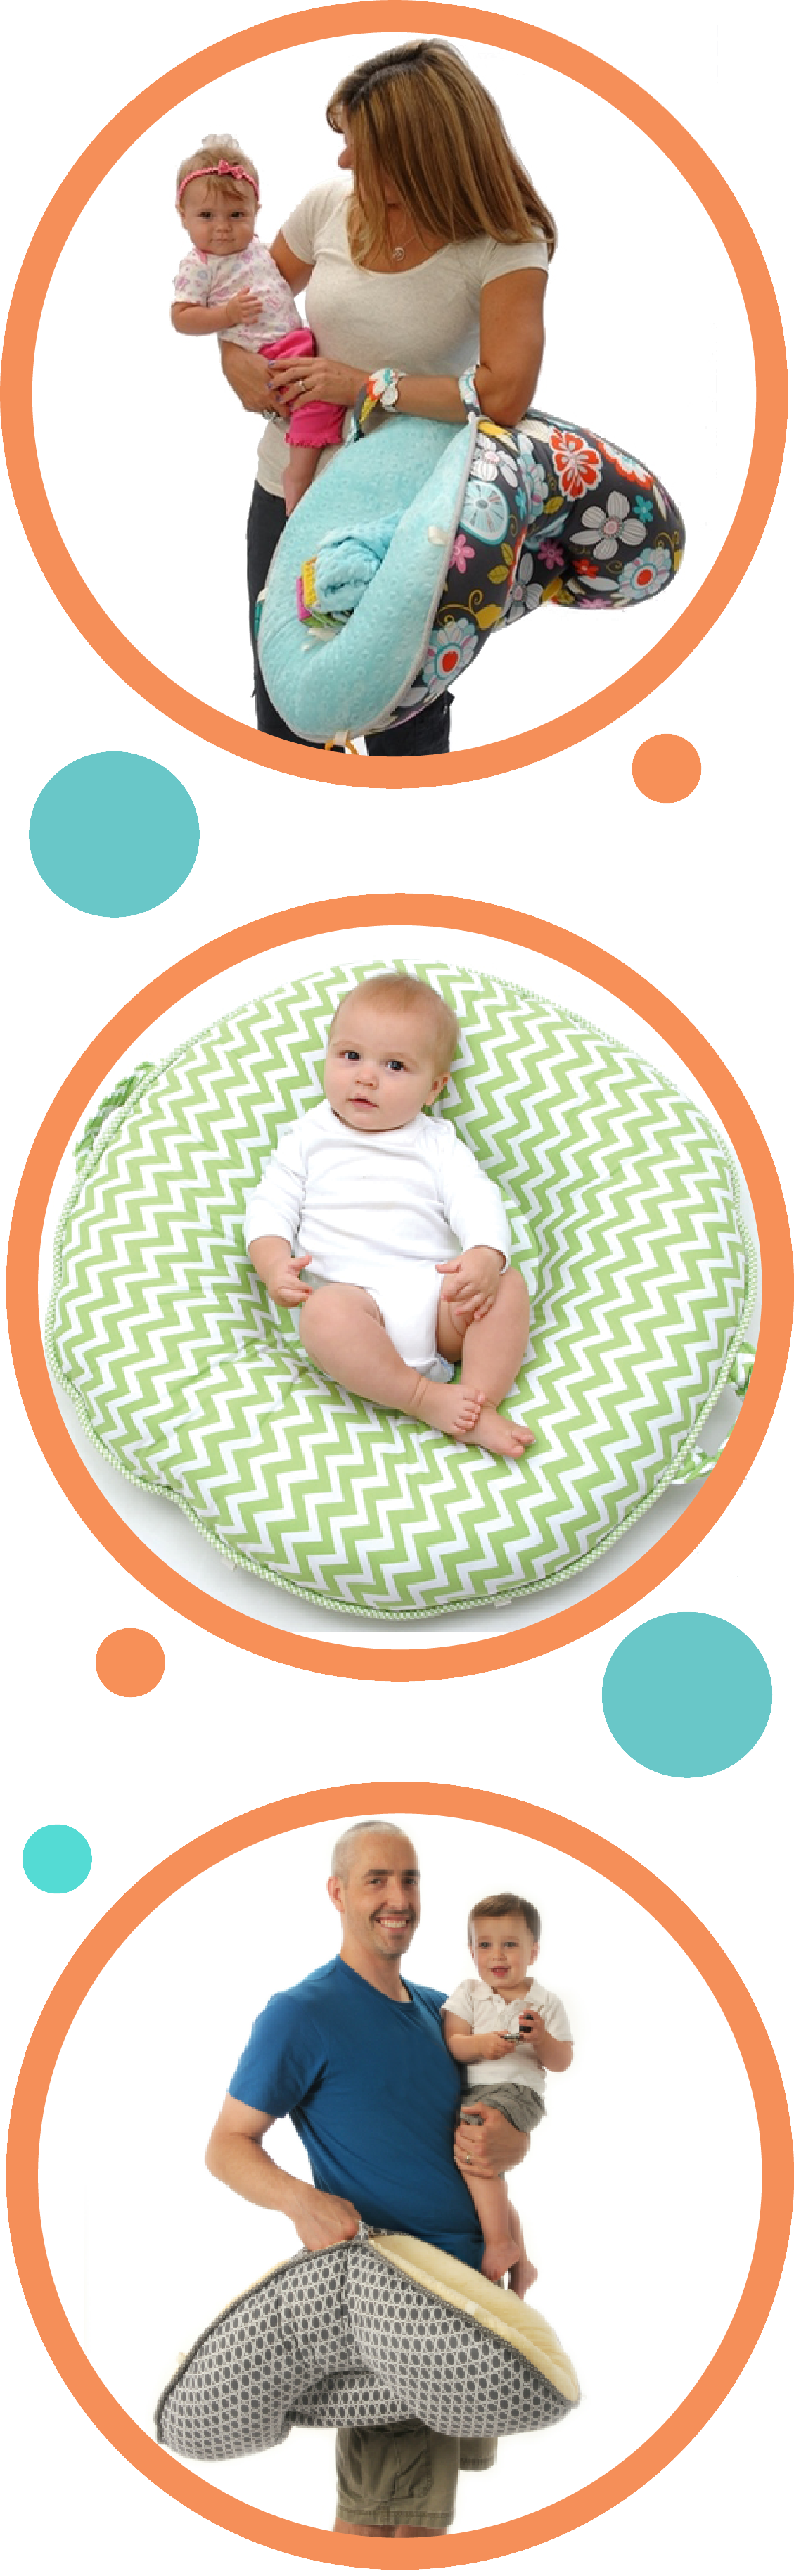 collection introducing mat babies hello en double baby ecn floor say mats for sided sensory toy the